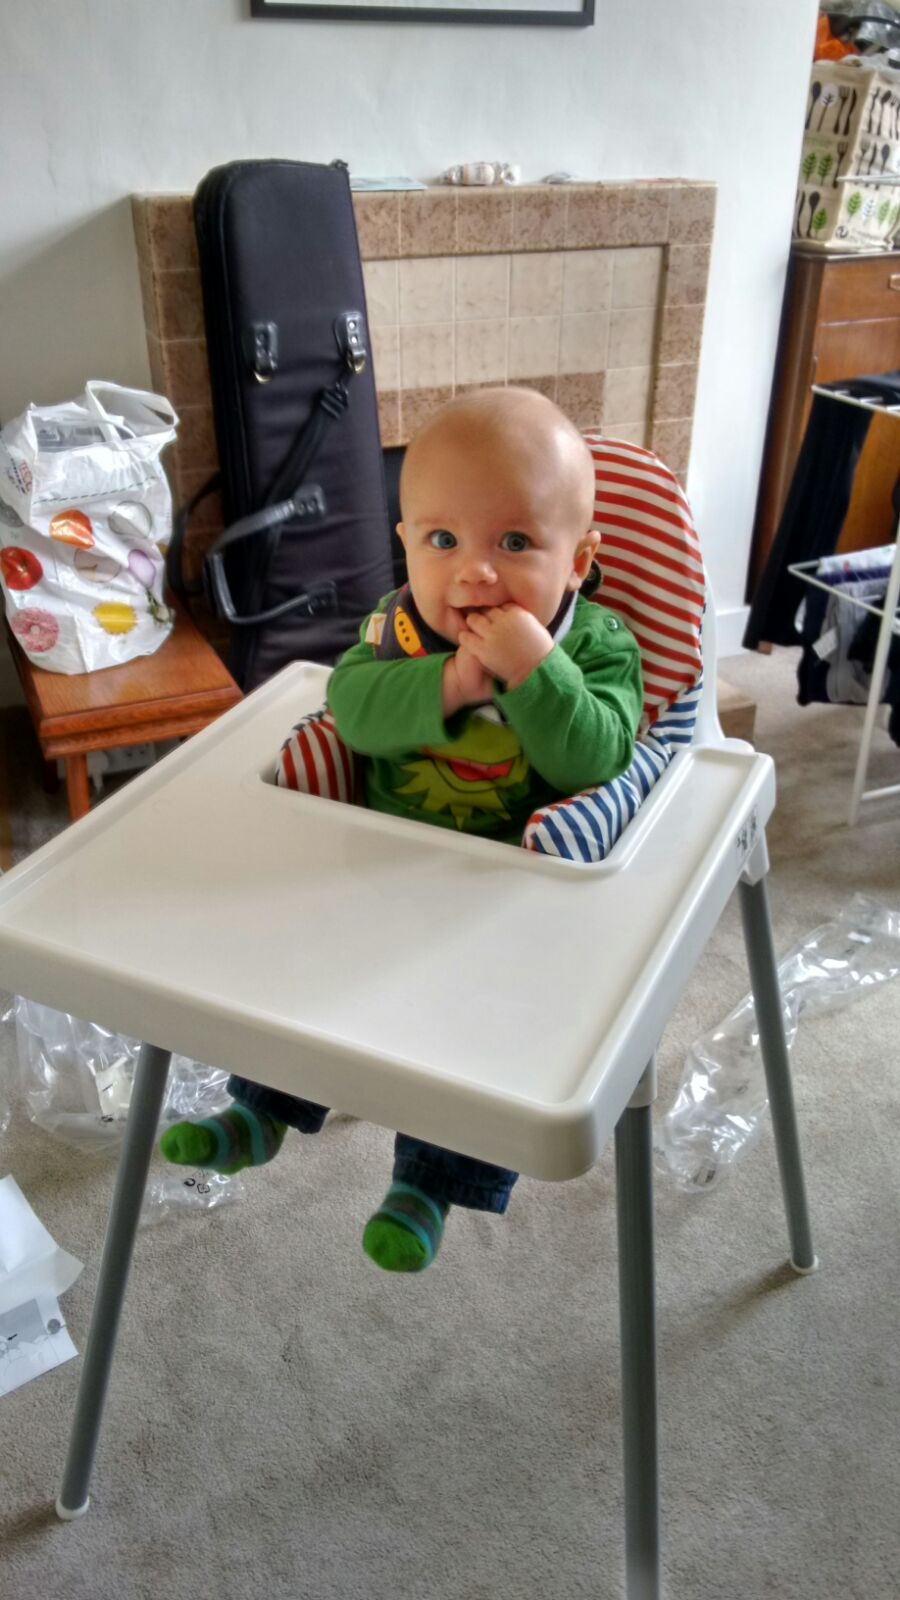 baby in a wipe clean chair